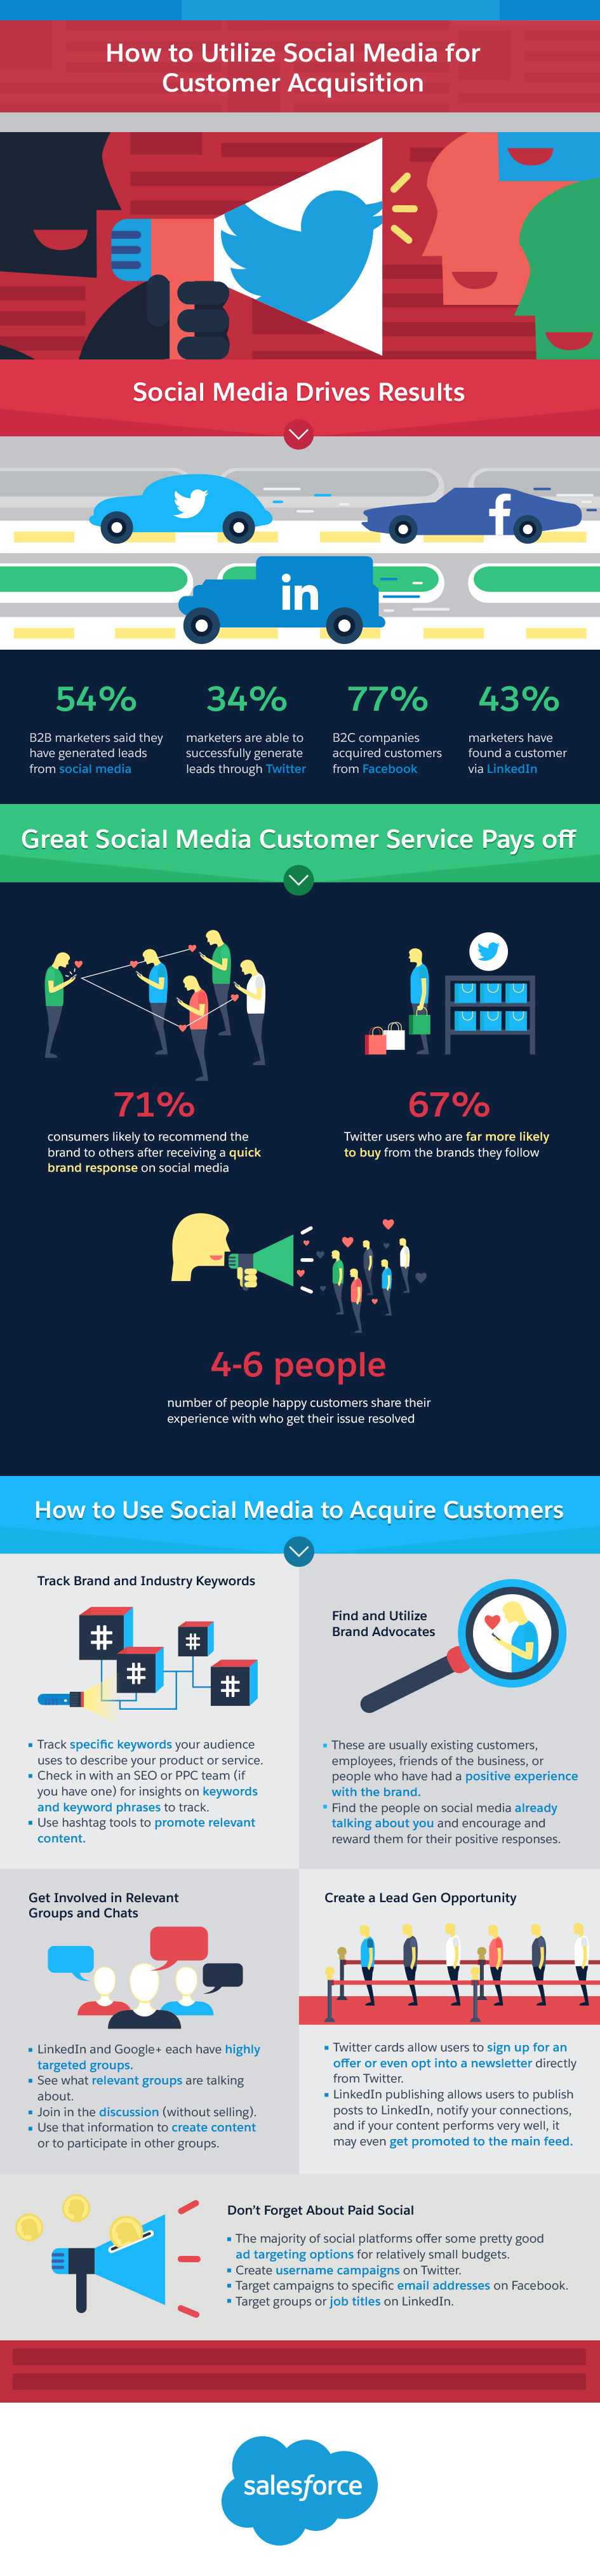 This Essential, Step-by-Step Customer Acquisition Strategy Will Actually Get You Customers Via Social Media | Social Media Today